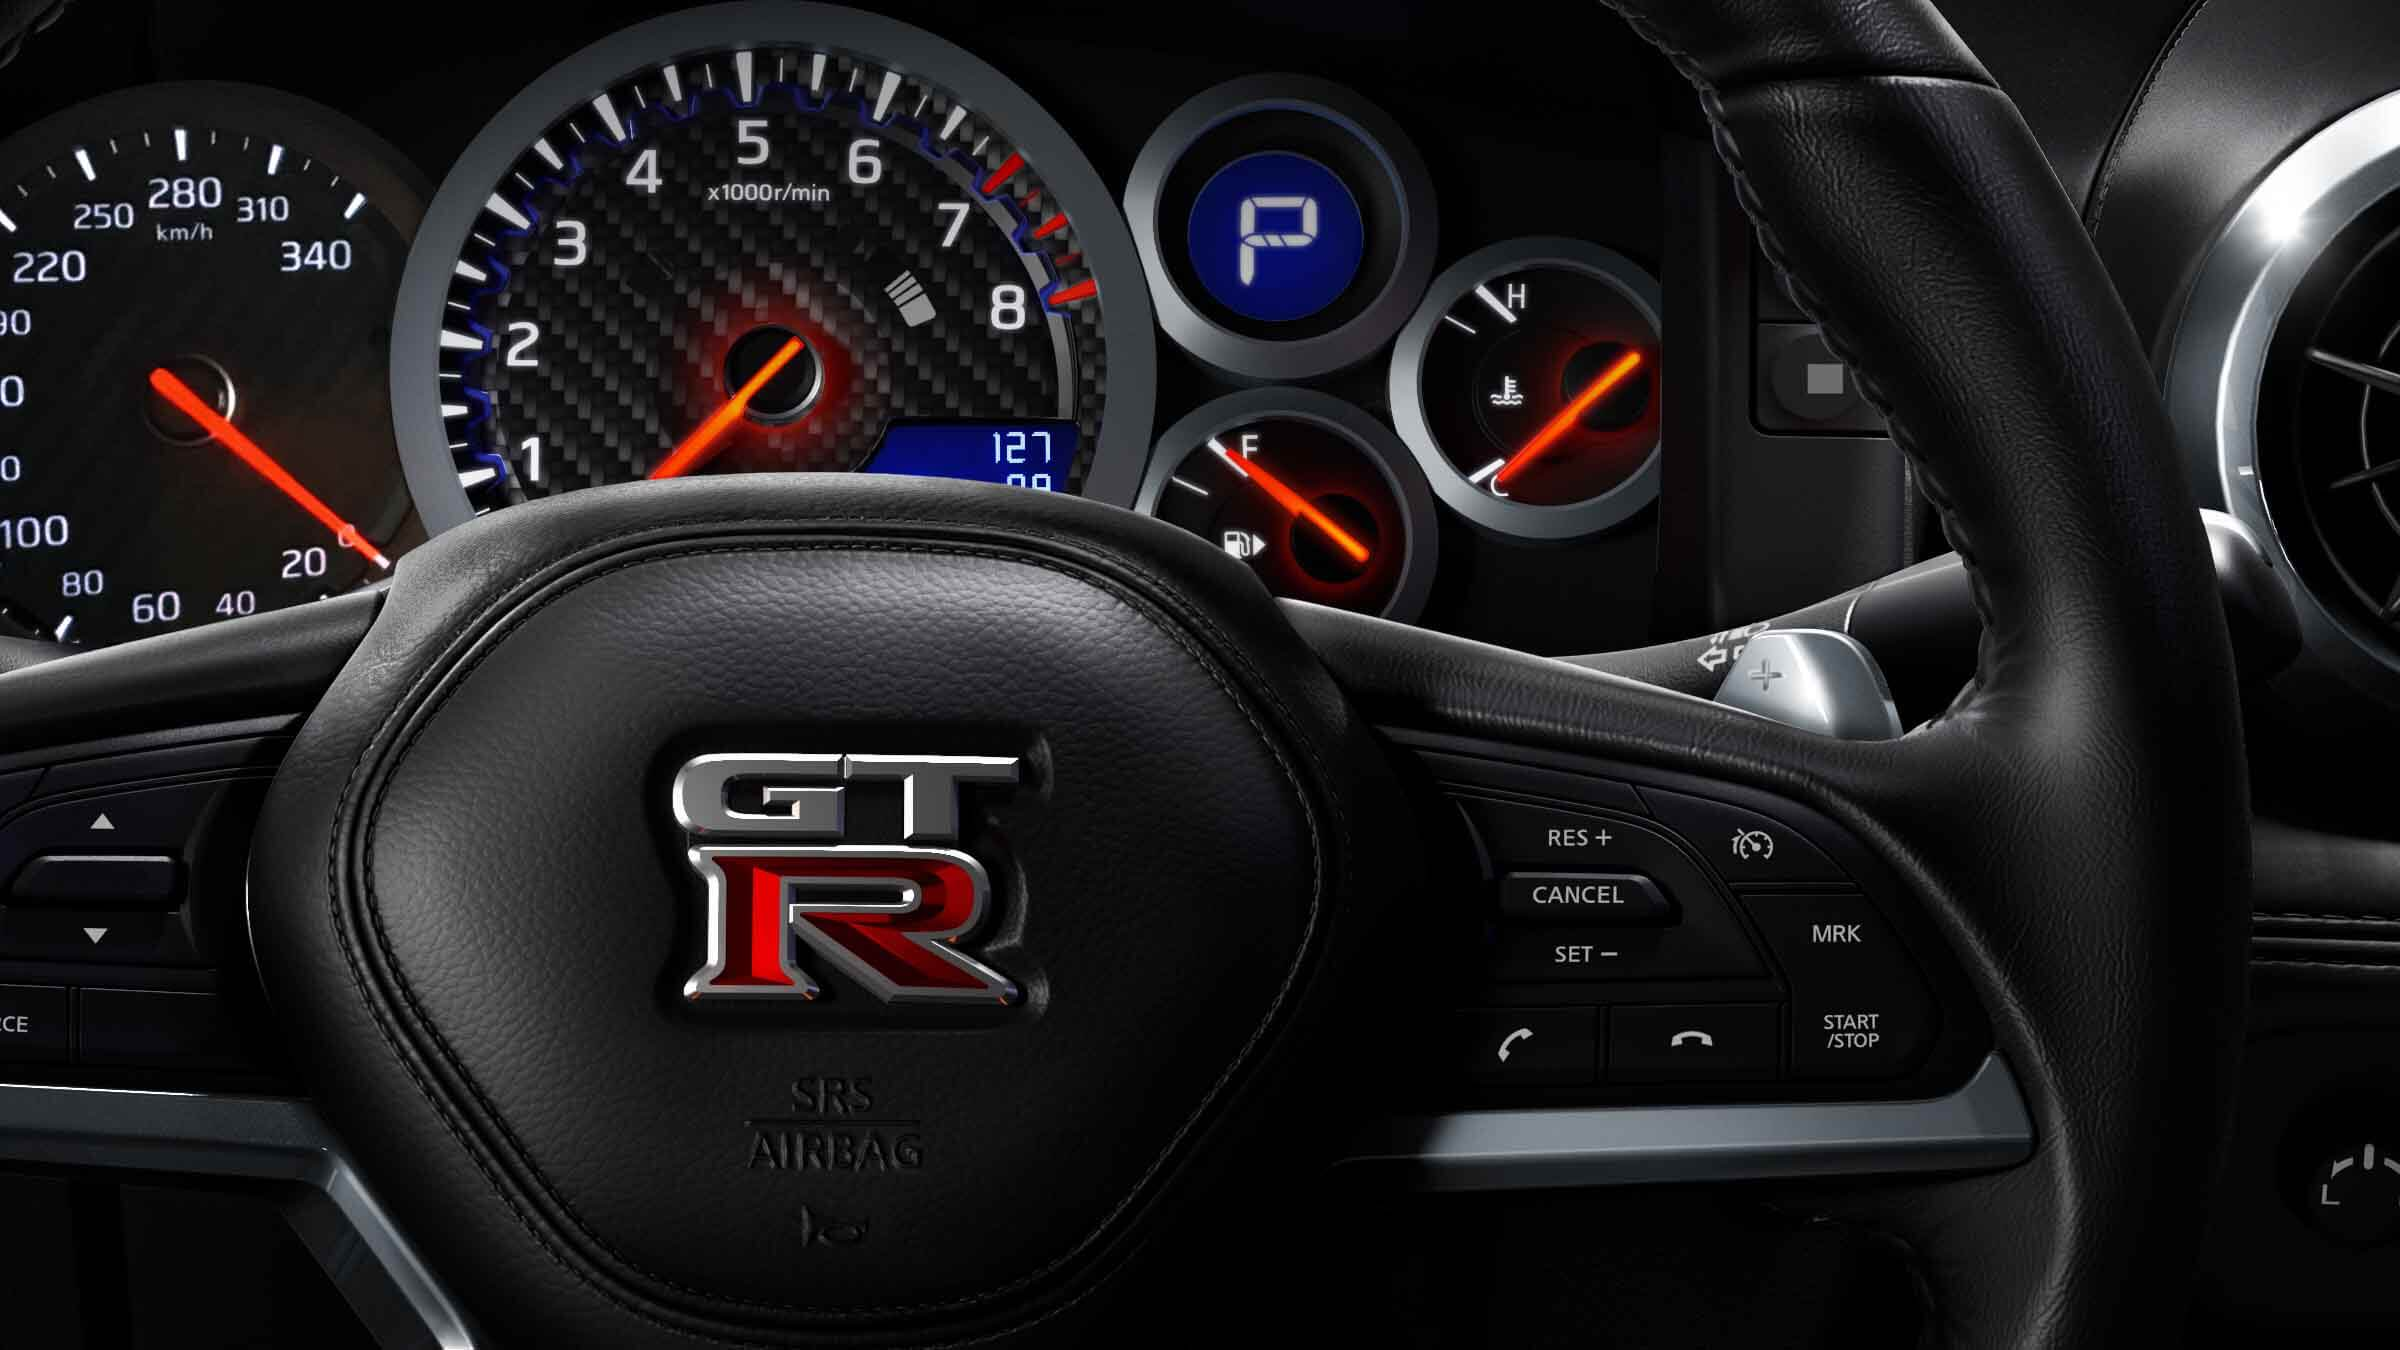 GT-R Steering Wheel and Gauges